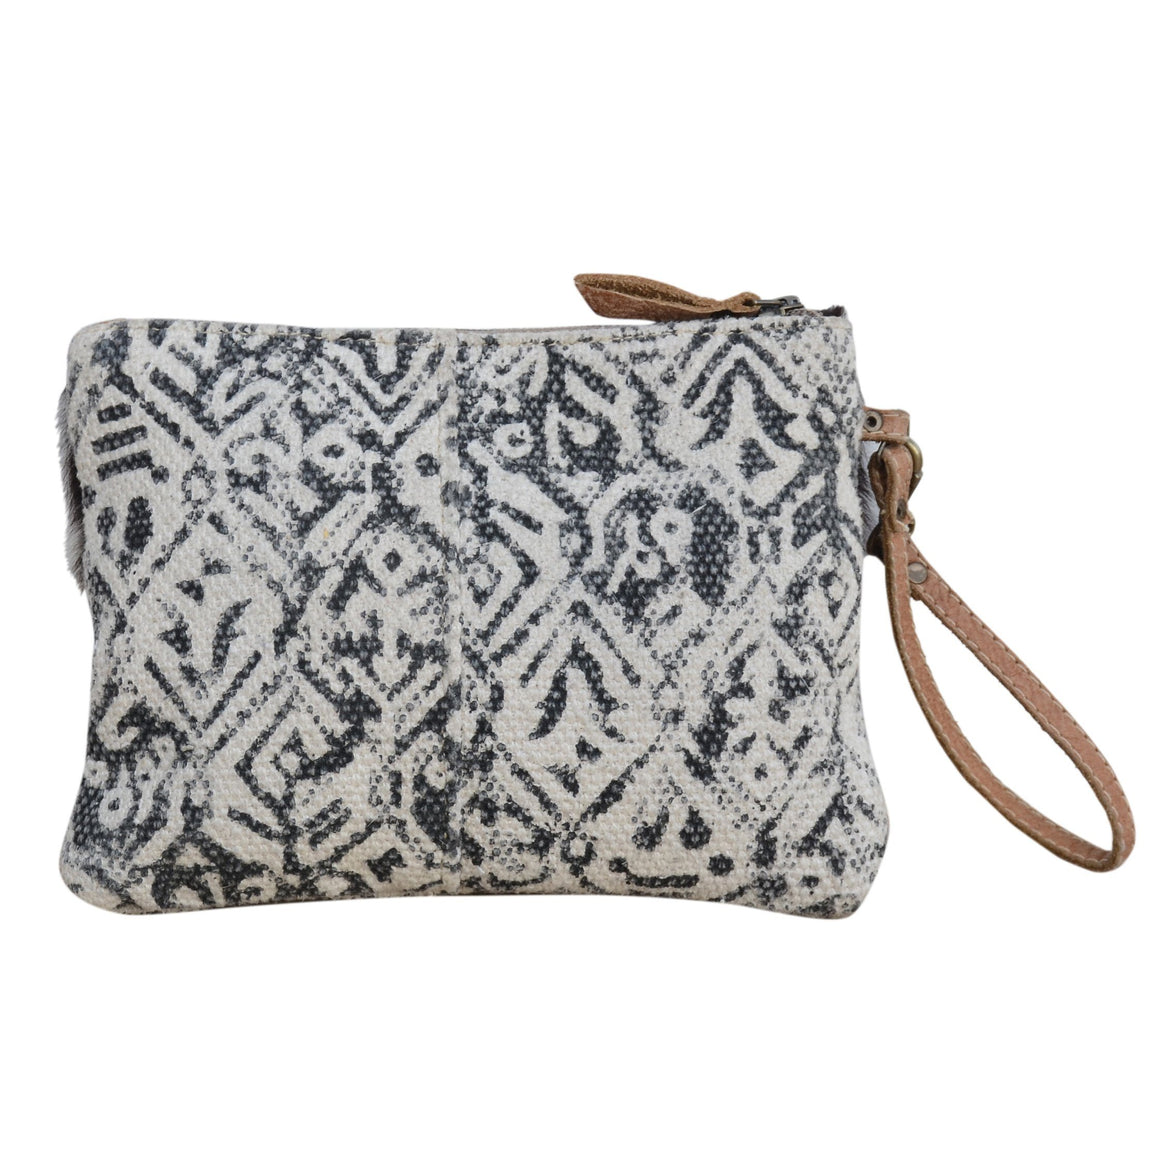 COWHIDE CANVAS ZIP CLUTCH BAG Philbee Interiors